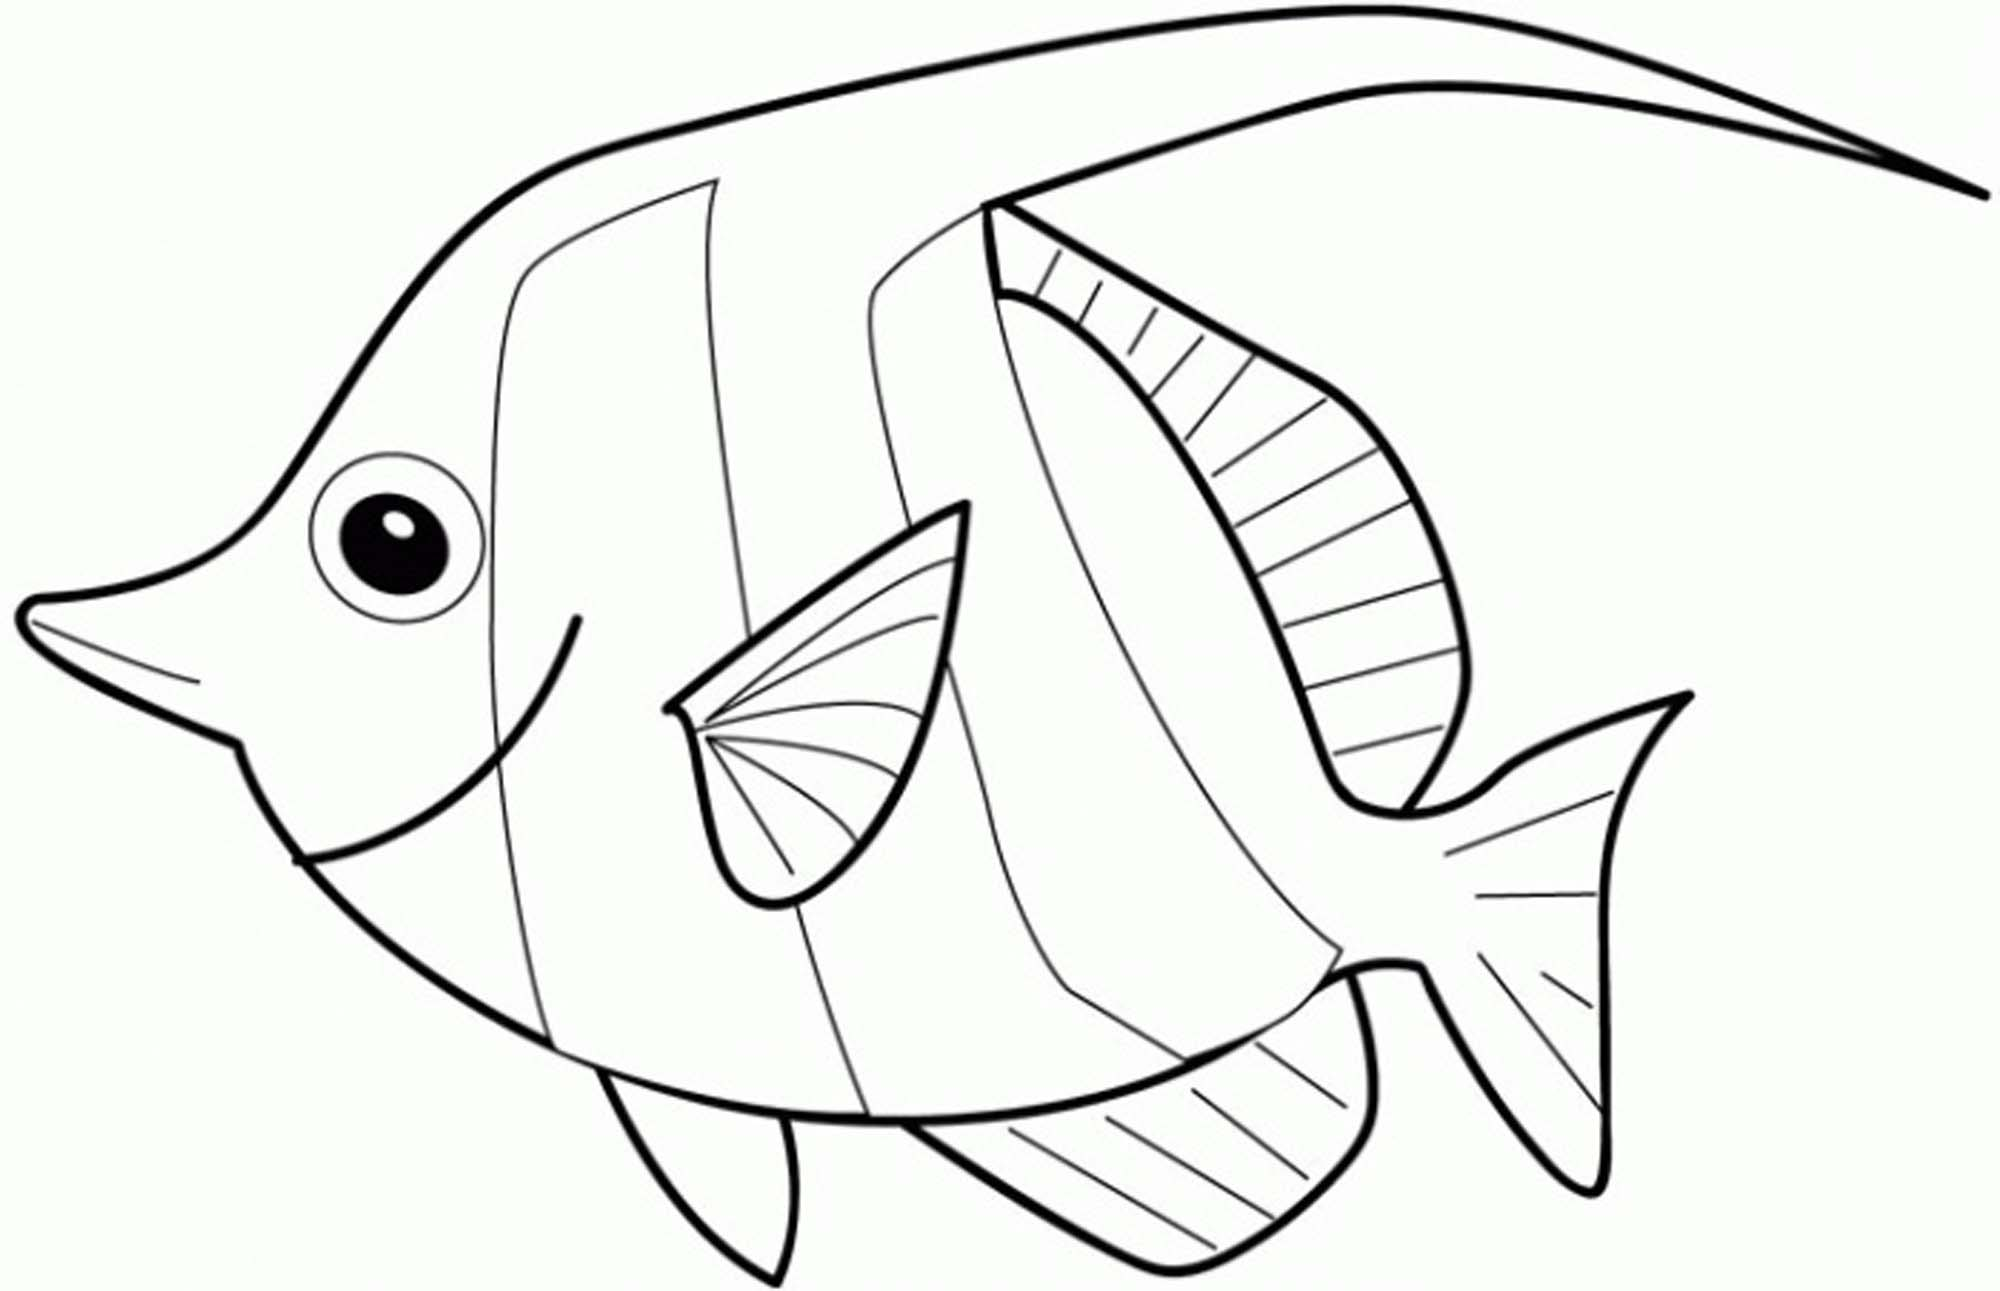 Rainbow Fish Coloring Page Bestappsforkids